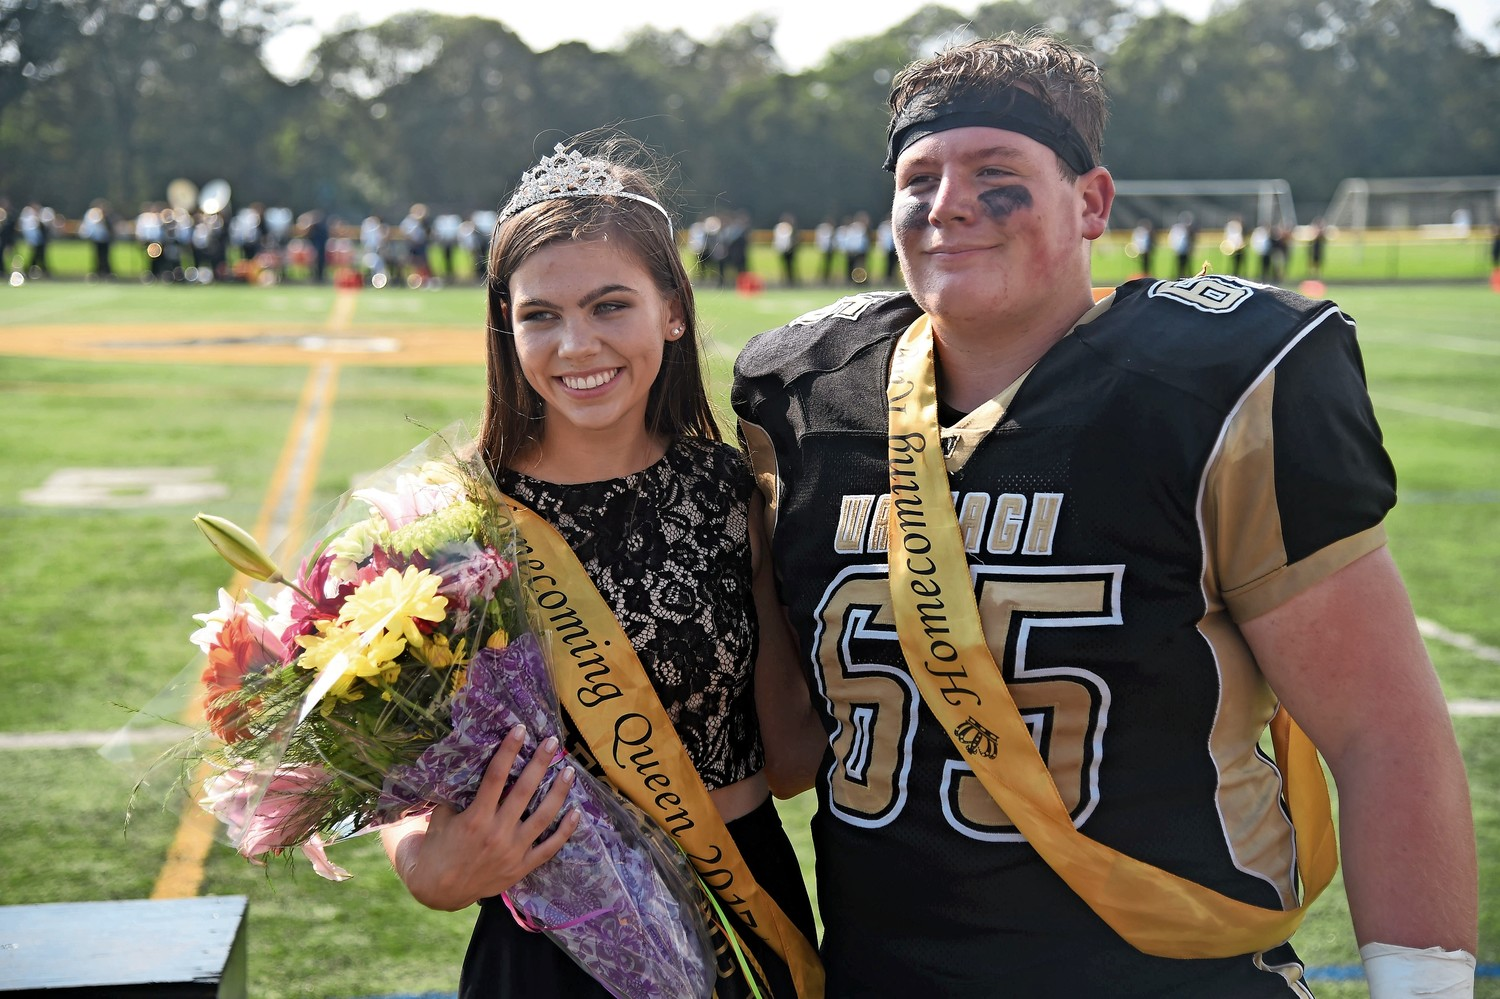 Kyleigh Watson and Logan von Runnen were named the Homecoming king and queen.